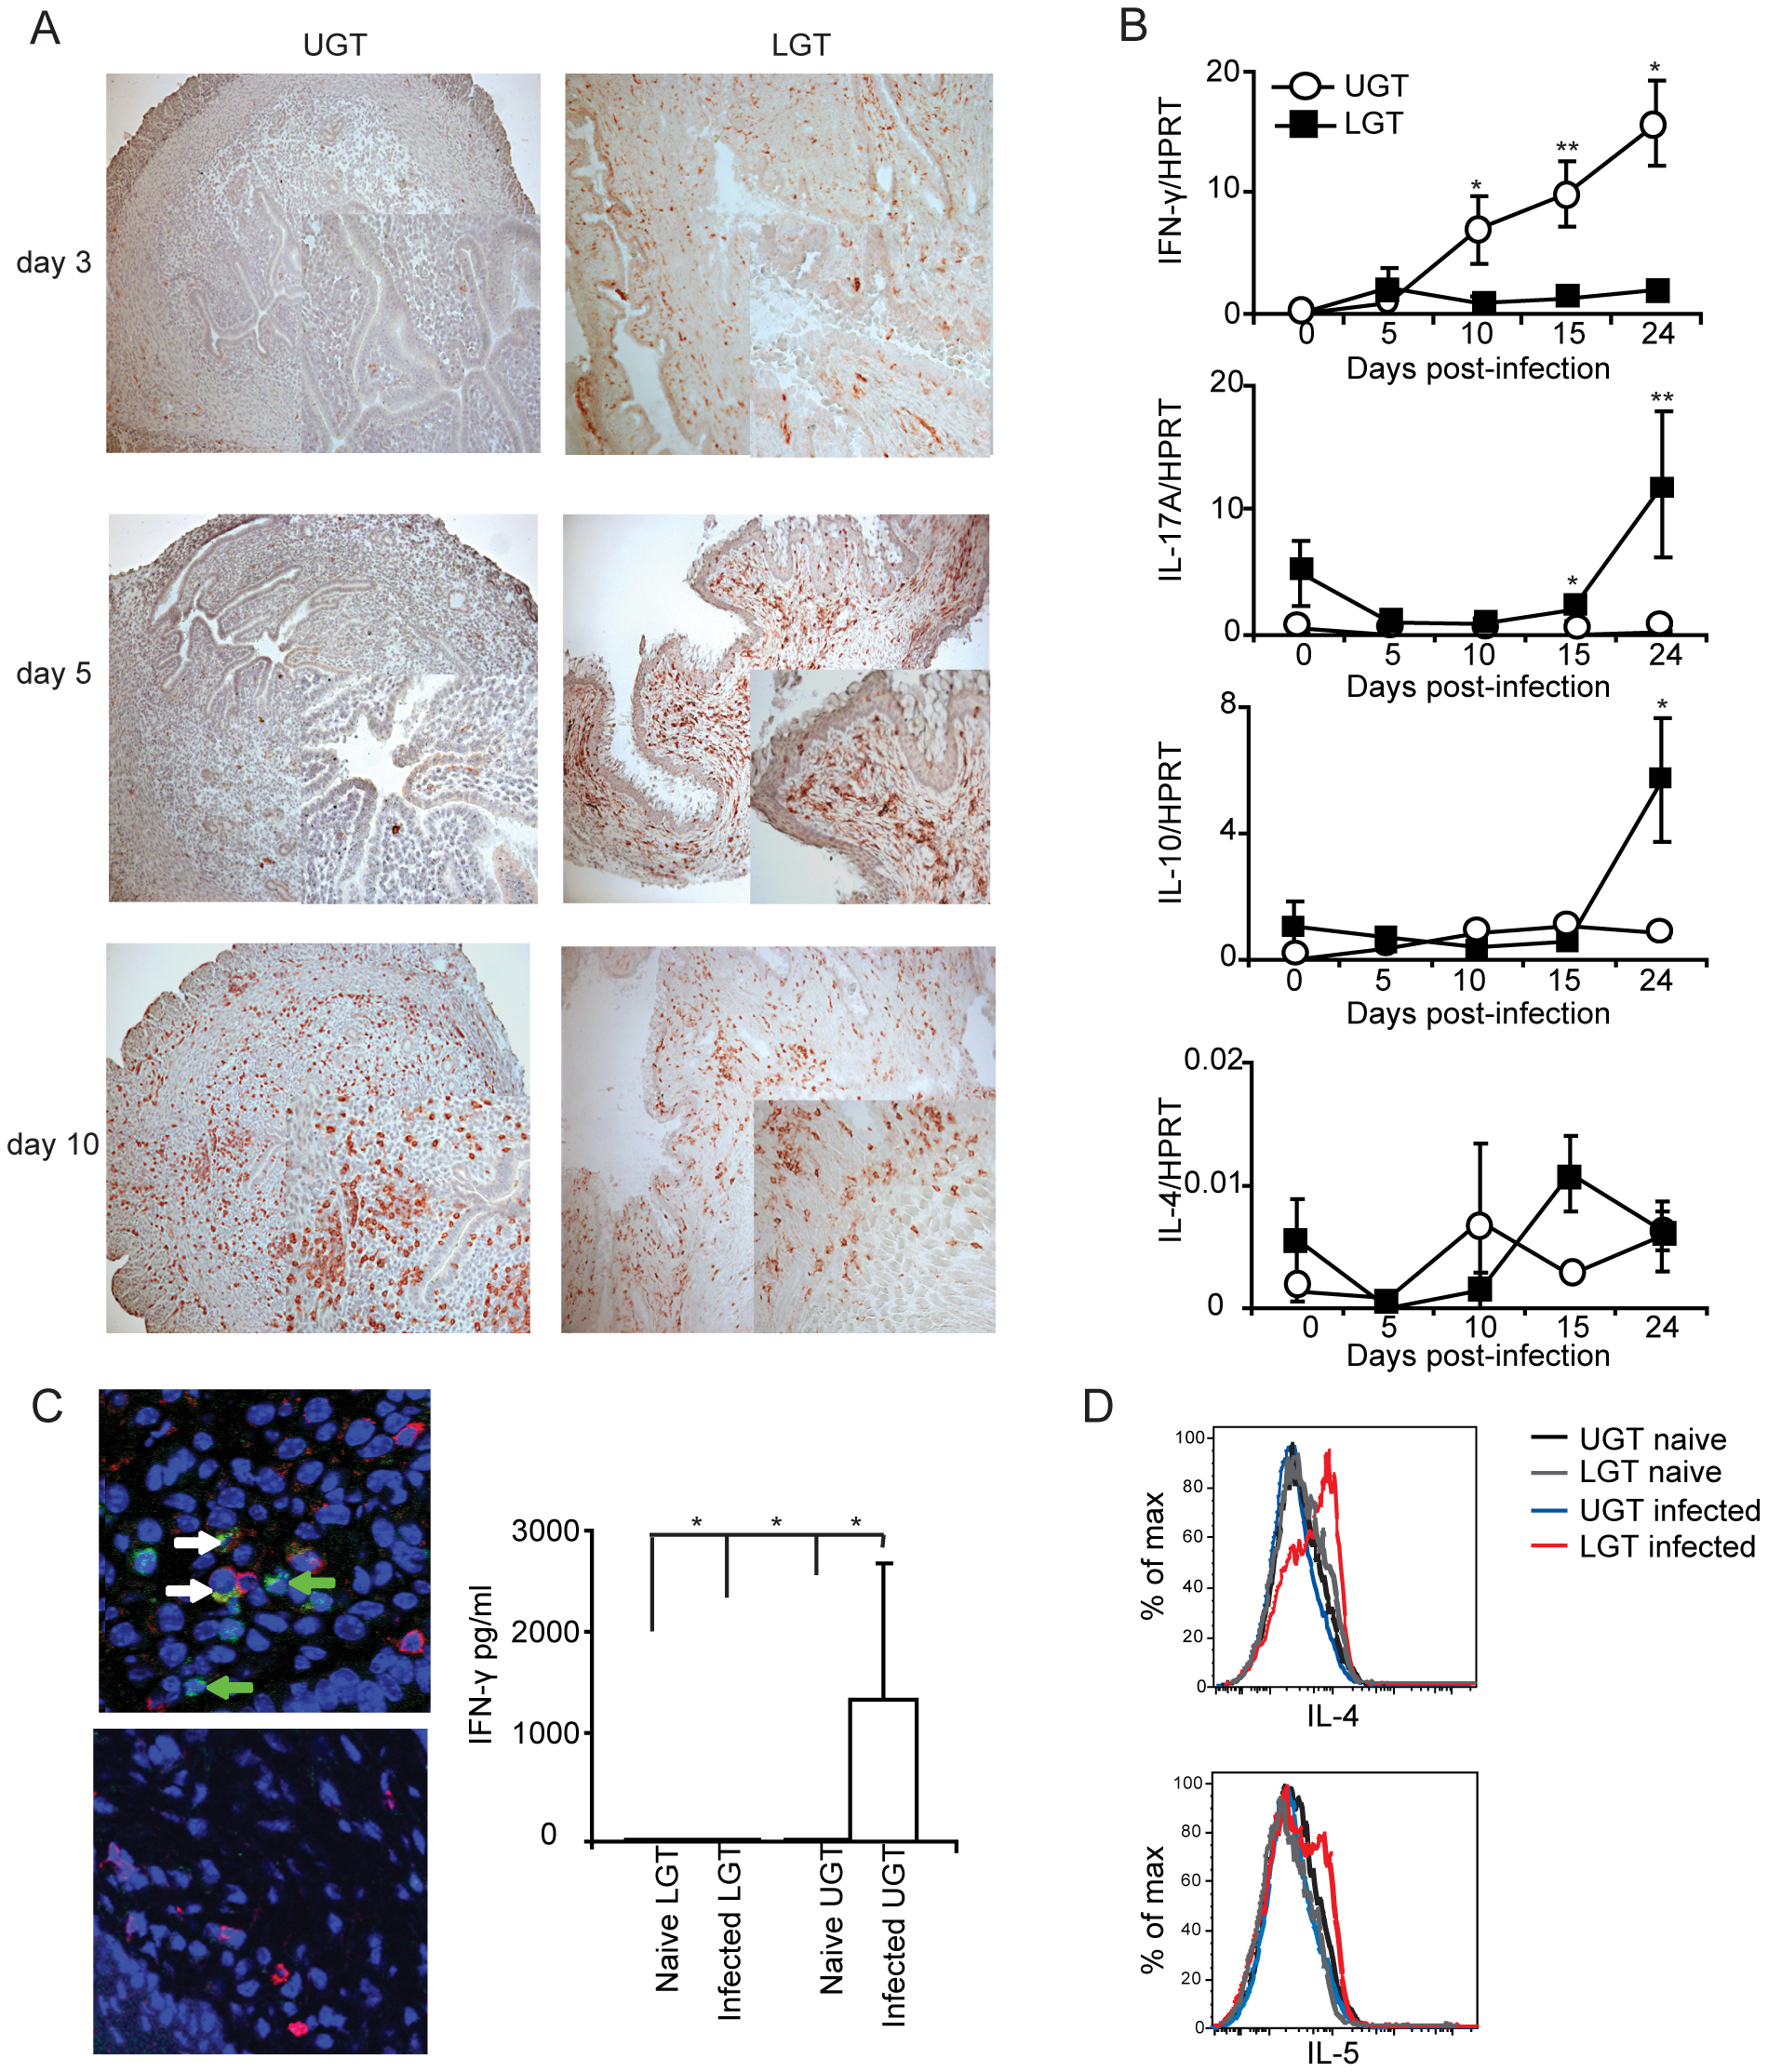 Distinct cytokine mRNA profiles in different regions of the genital tract during <i>C. trachomatis</i> infection.